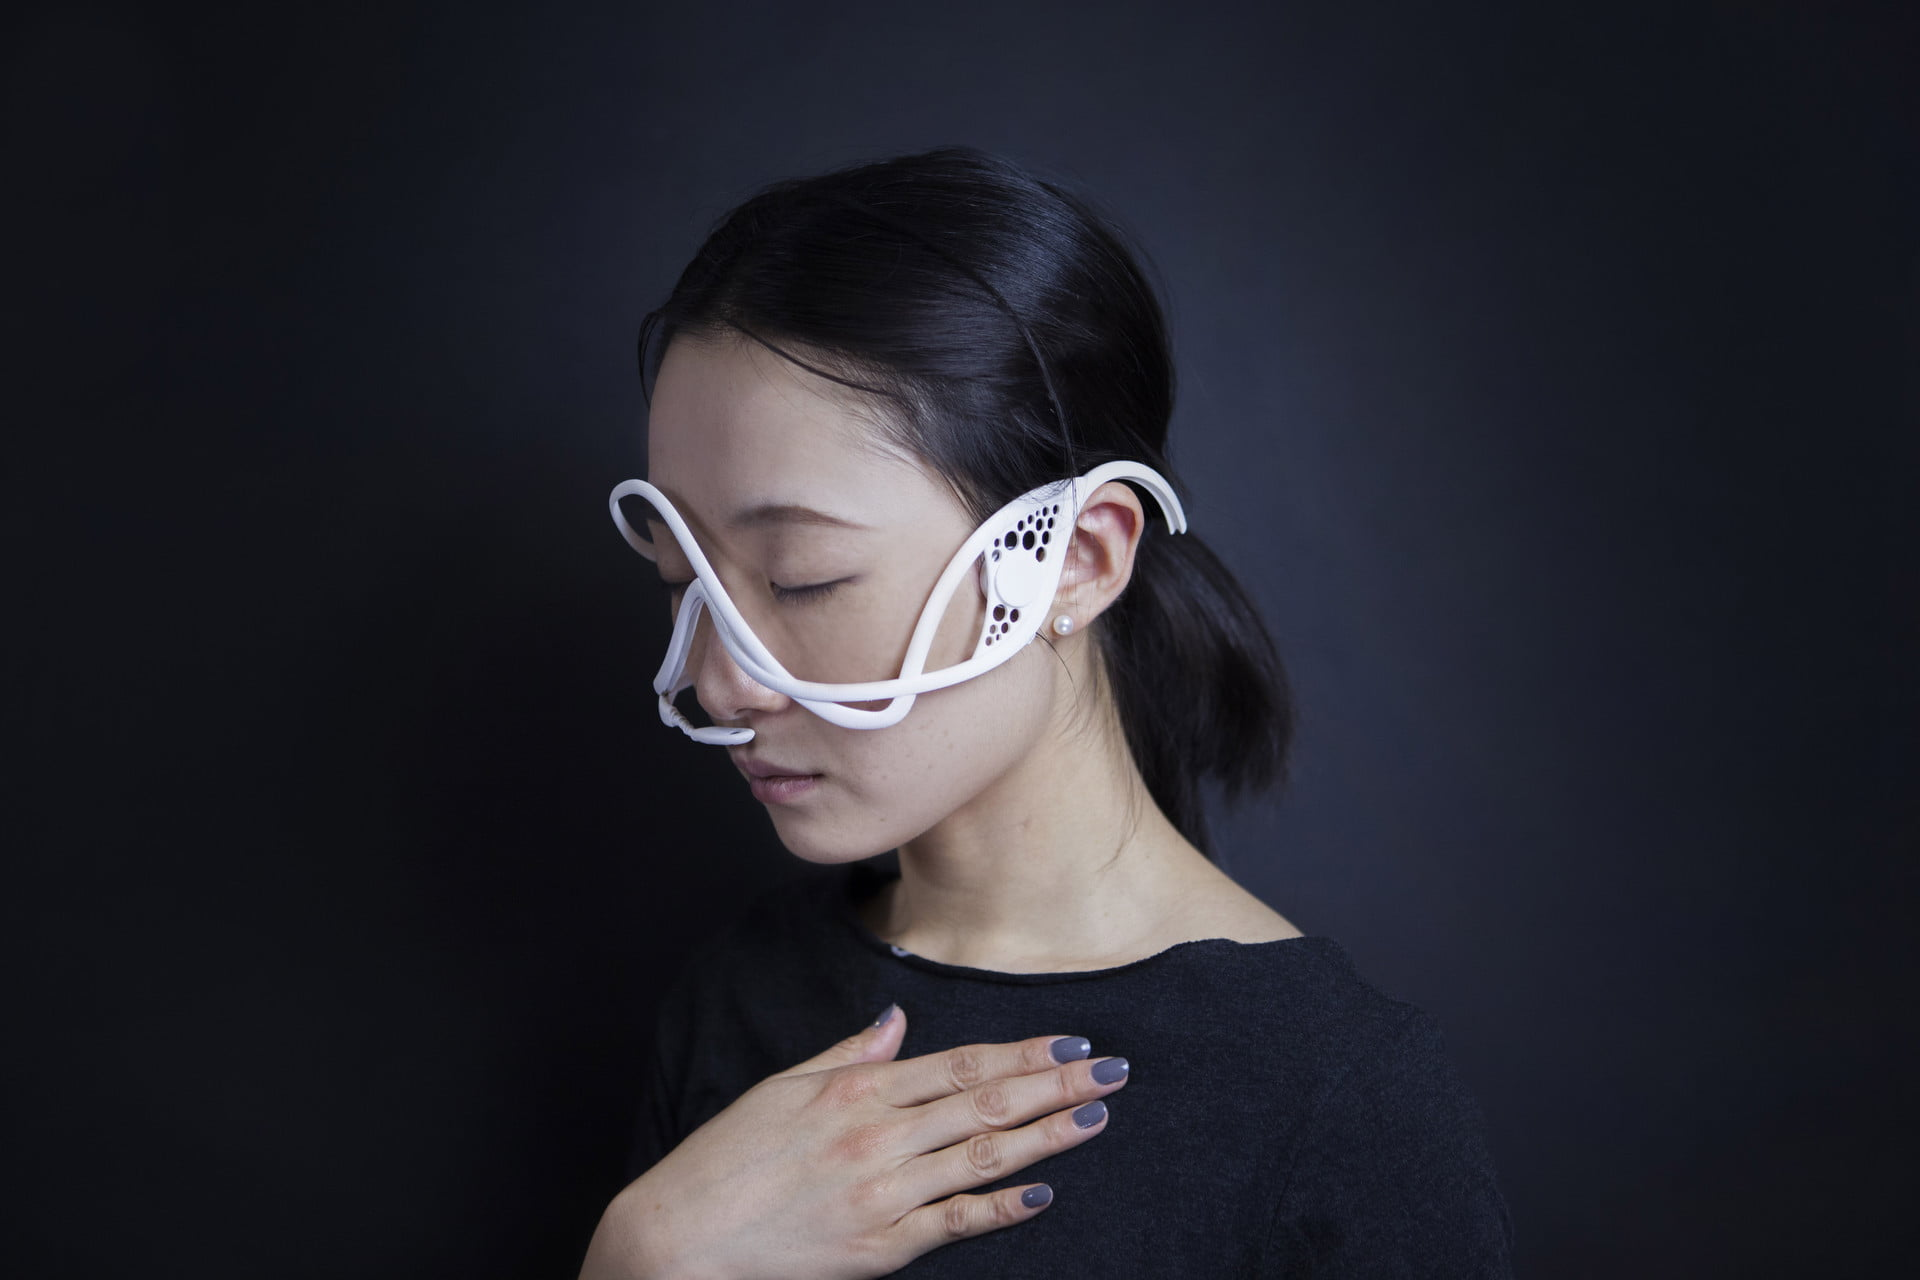 MIT's bizarre mask can control your mood, make you feel aroused or anxious